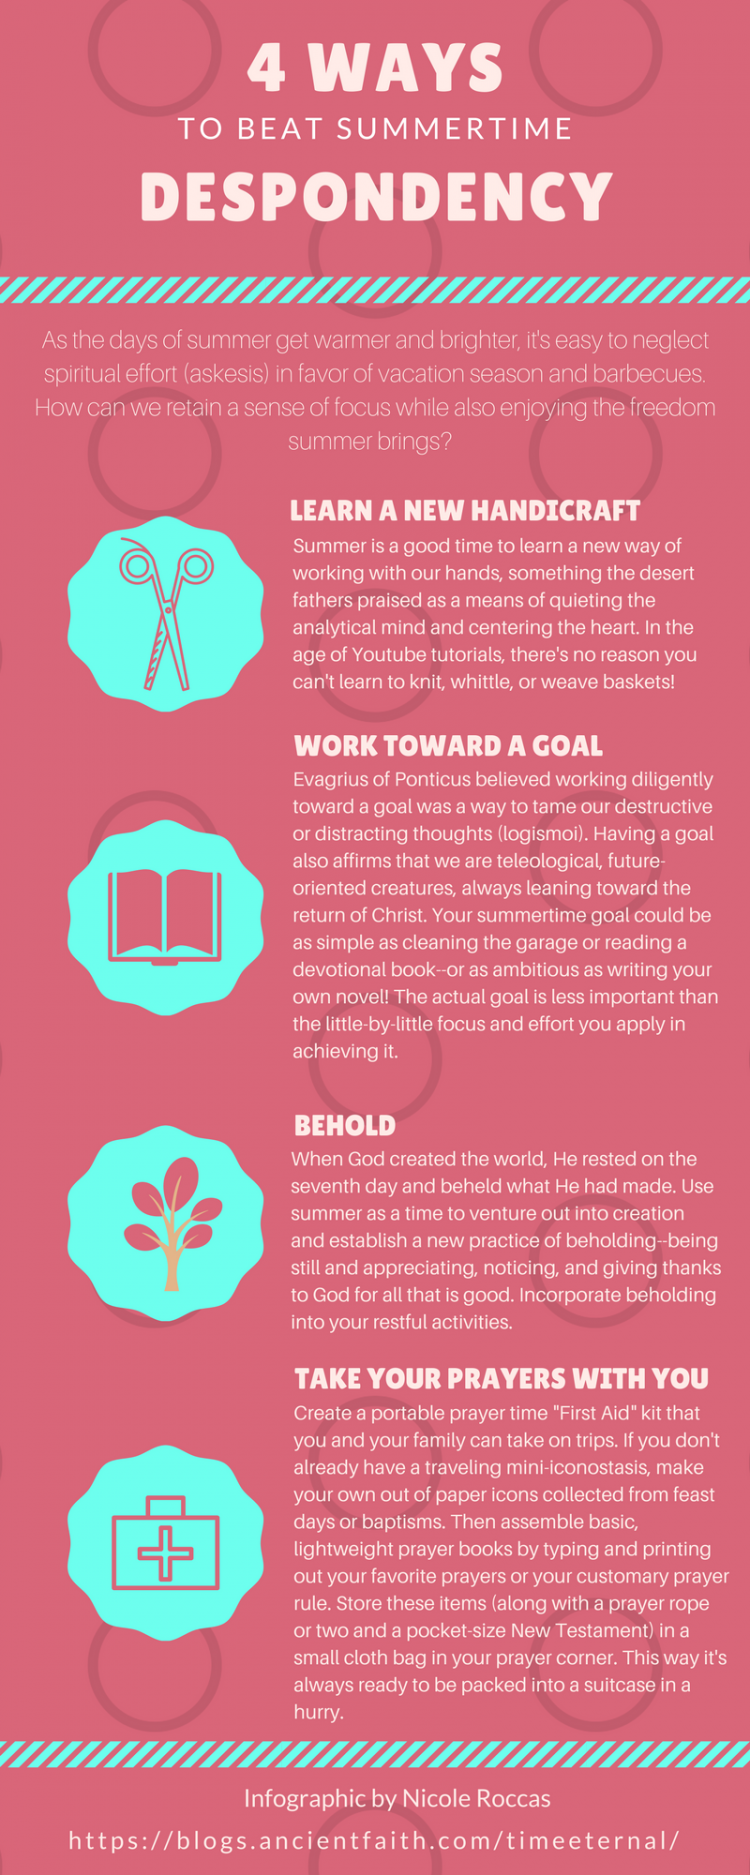 An infographic for Christians about how to beat despondency, depression, or acedia during the summer.